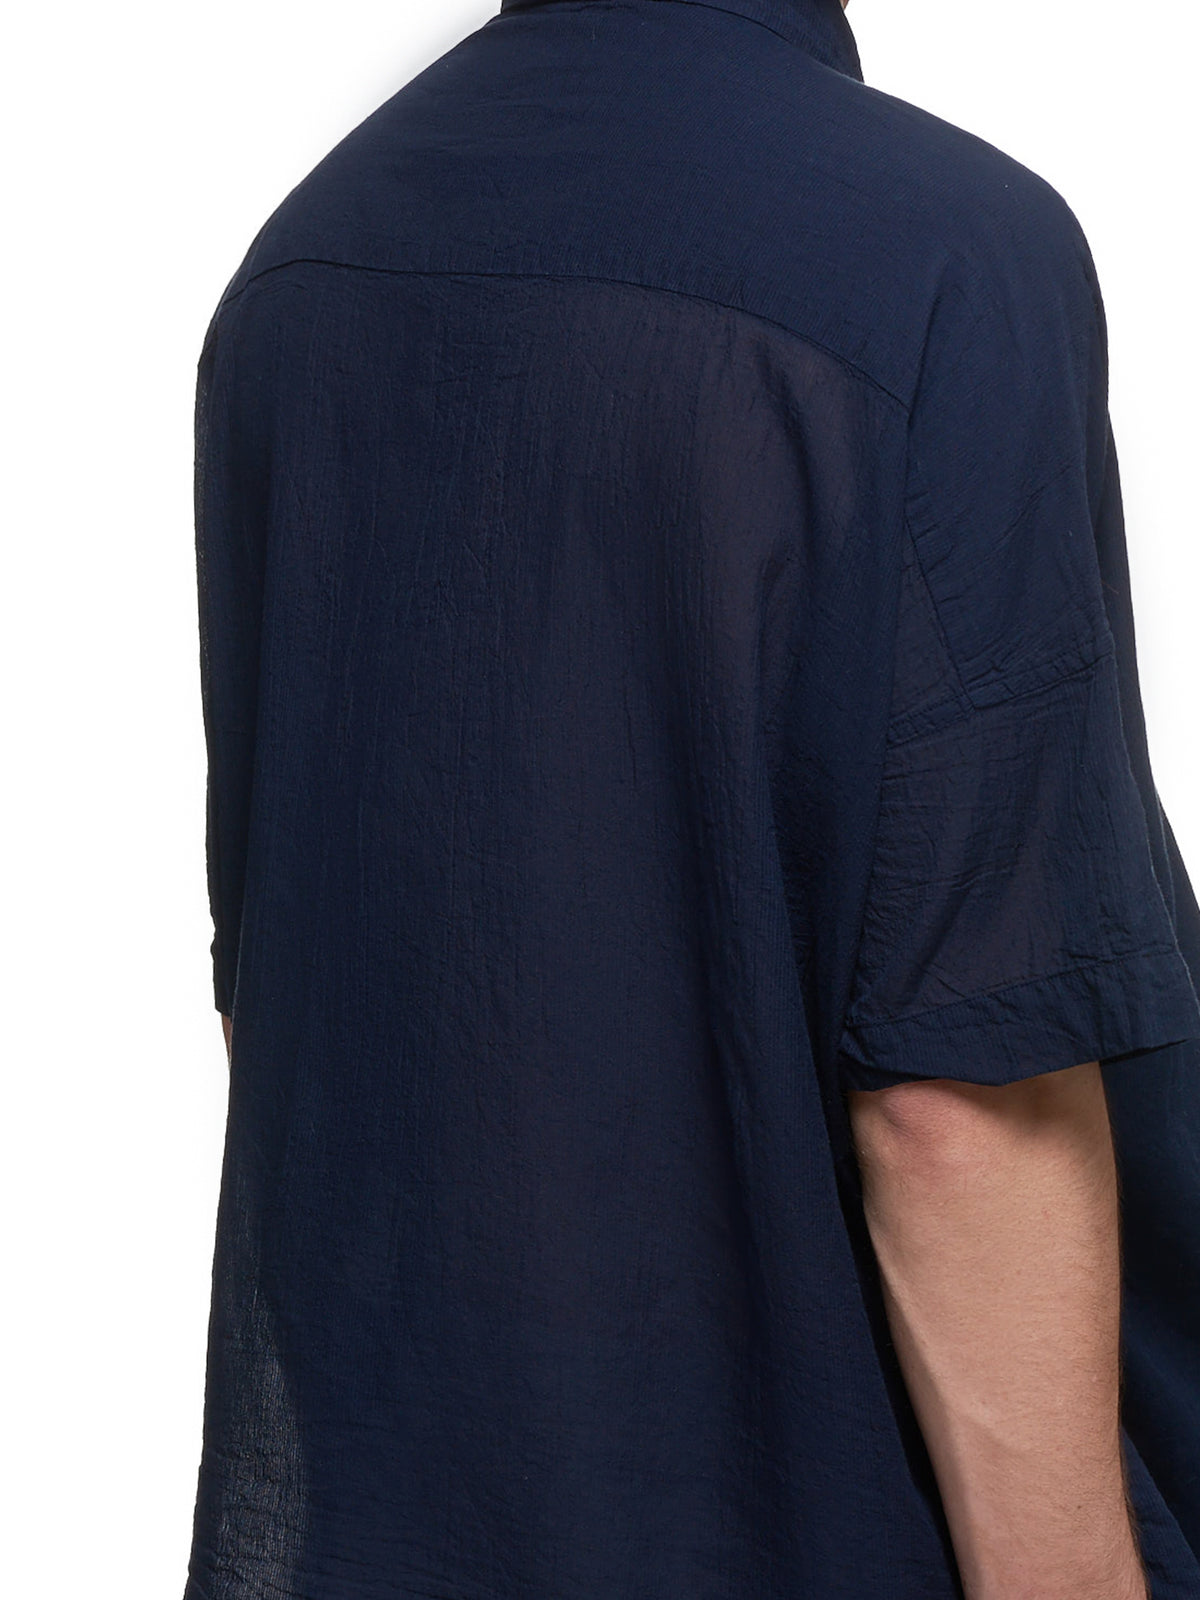 Dark Shirt (HC170T-DARK-NAVY)